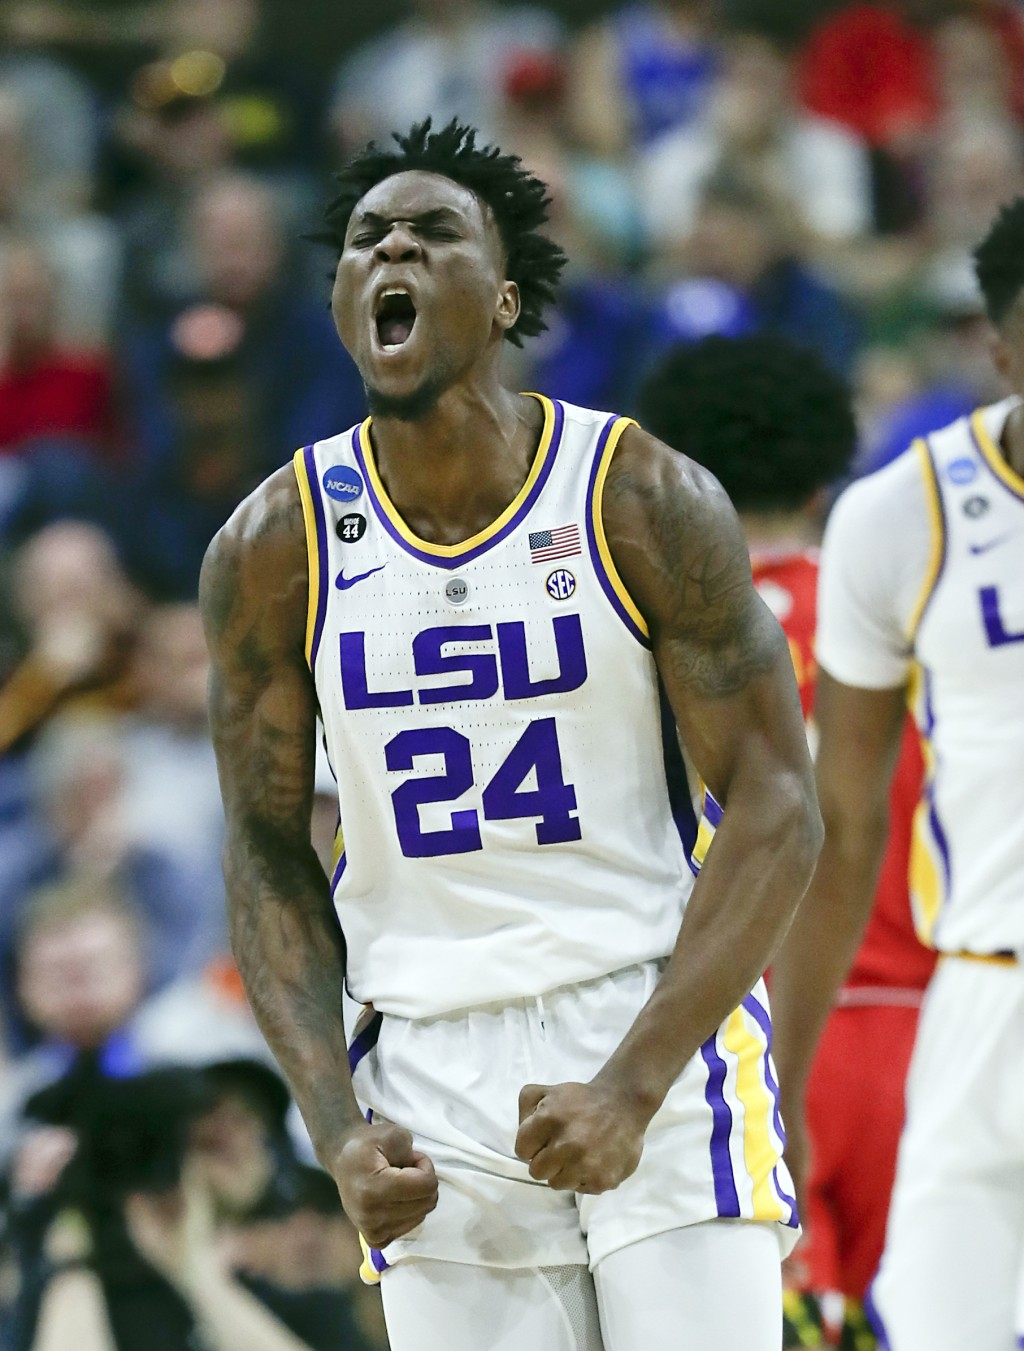 LSU's Emmitt Williams (24) celebrates after making a shot against Maryland during the first half of a second-round game in the NCAA men's college bask...